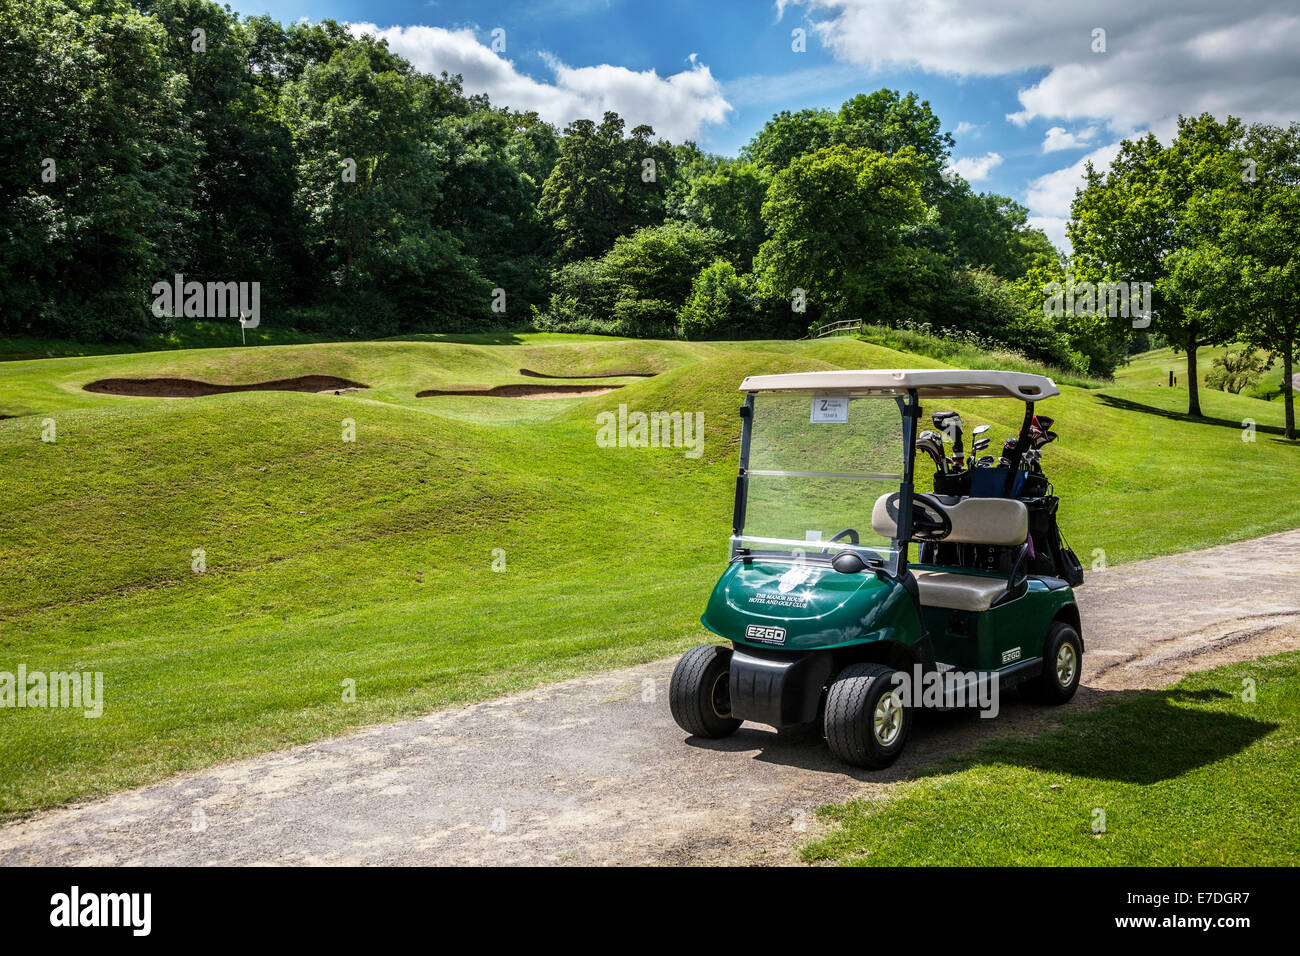 Bunkers by a putting green with flagstick and hole and an electric buggy or cart on a typical golf course. - Stock Image